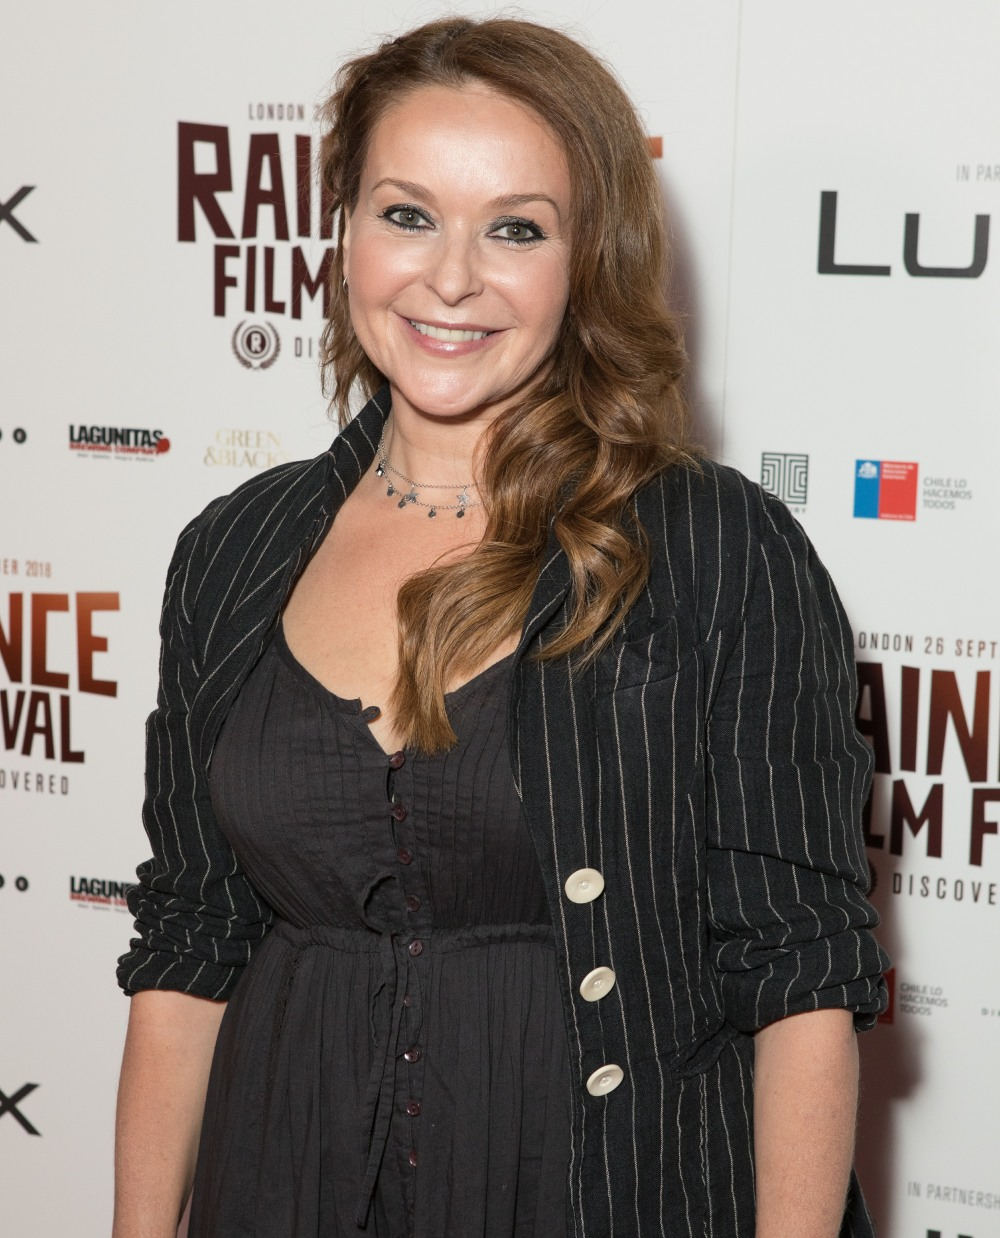 Julia Sawalha, 50, was fired from the 'Chicken Run' sequel for sounding 'too old'